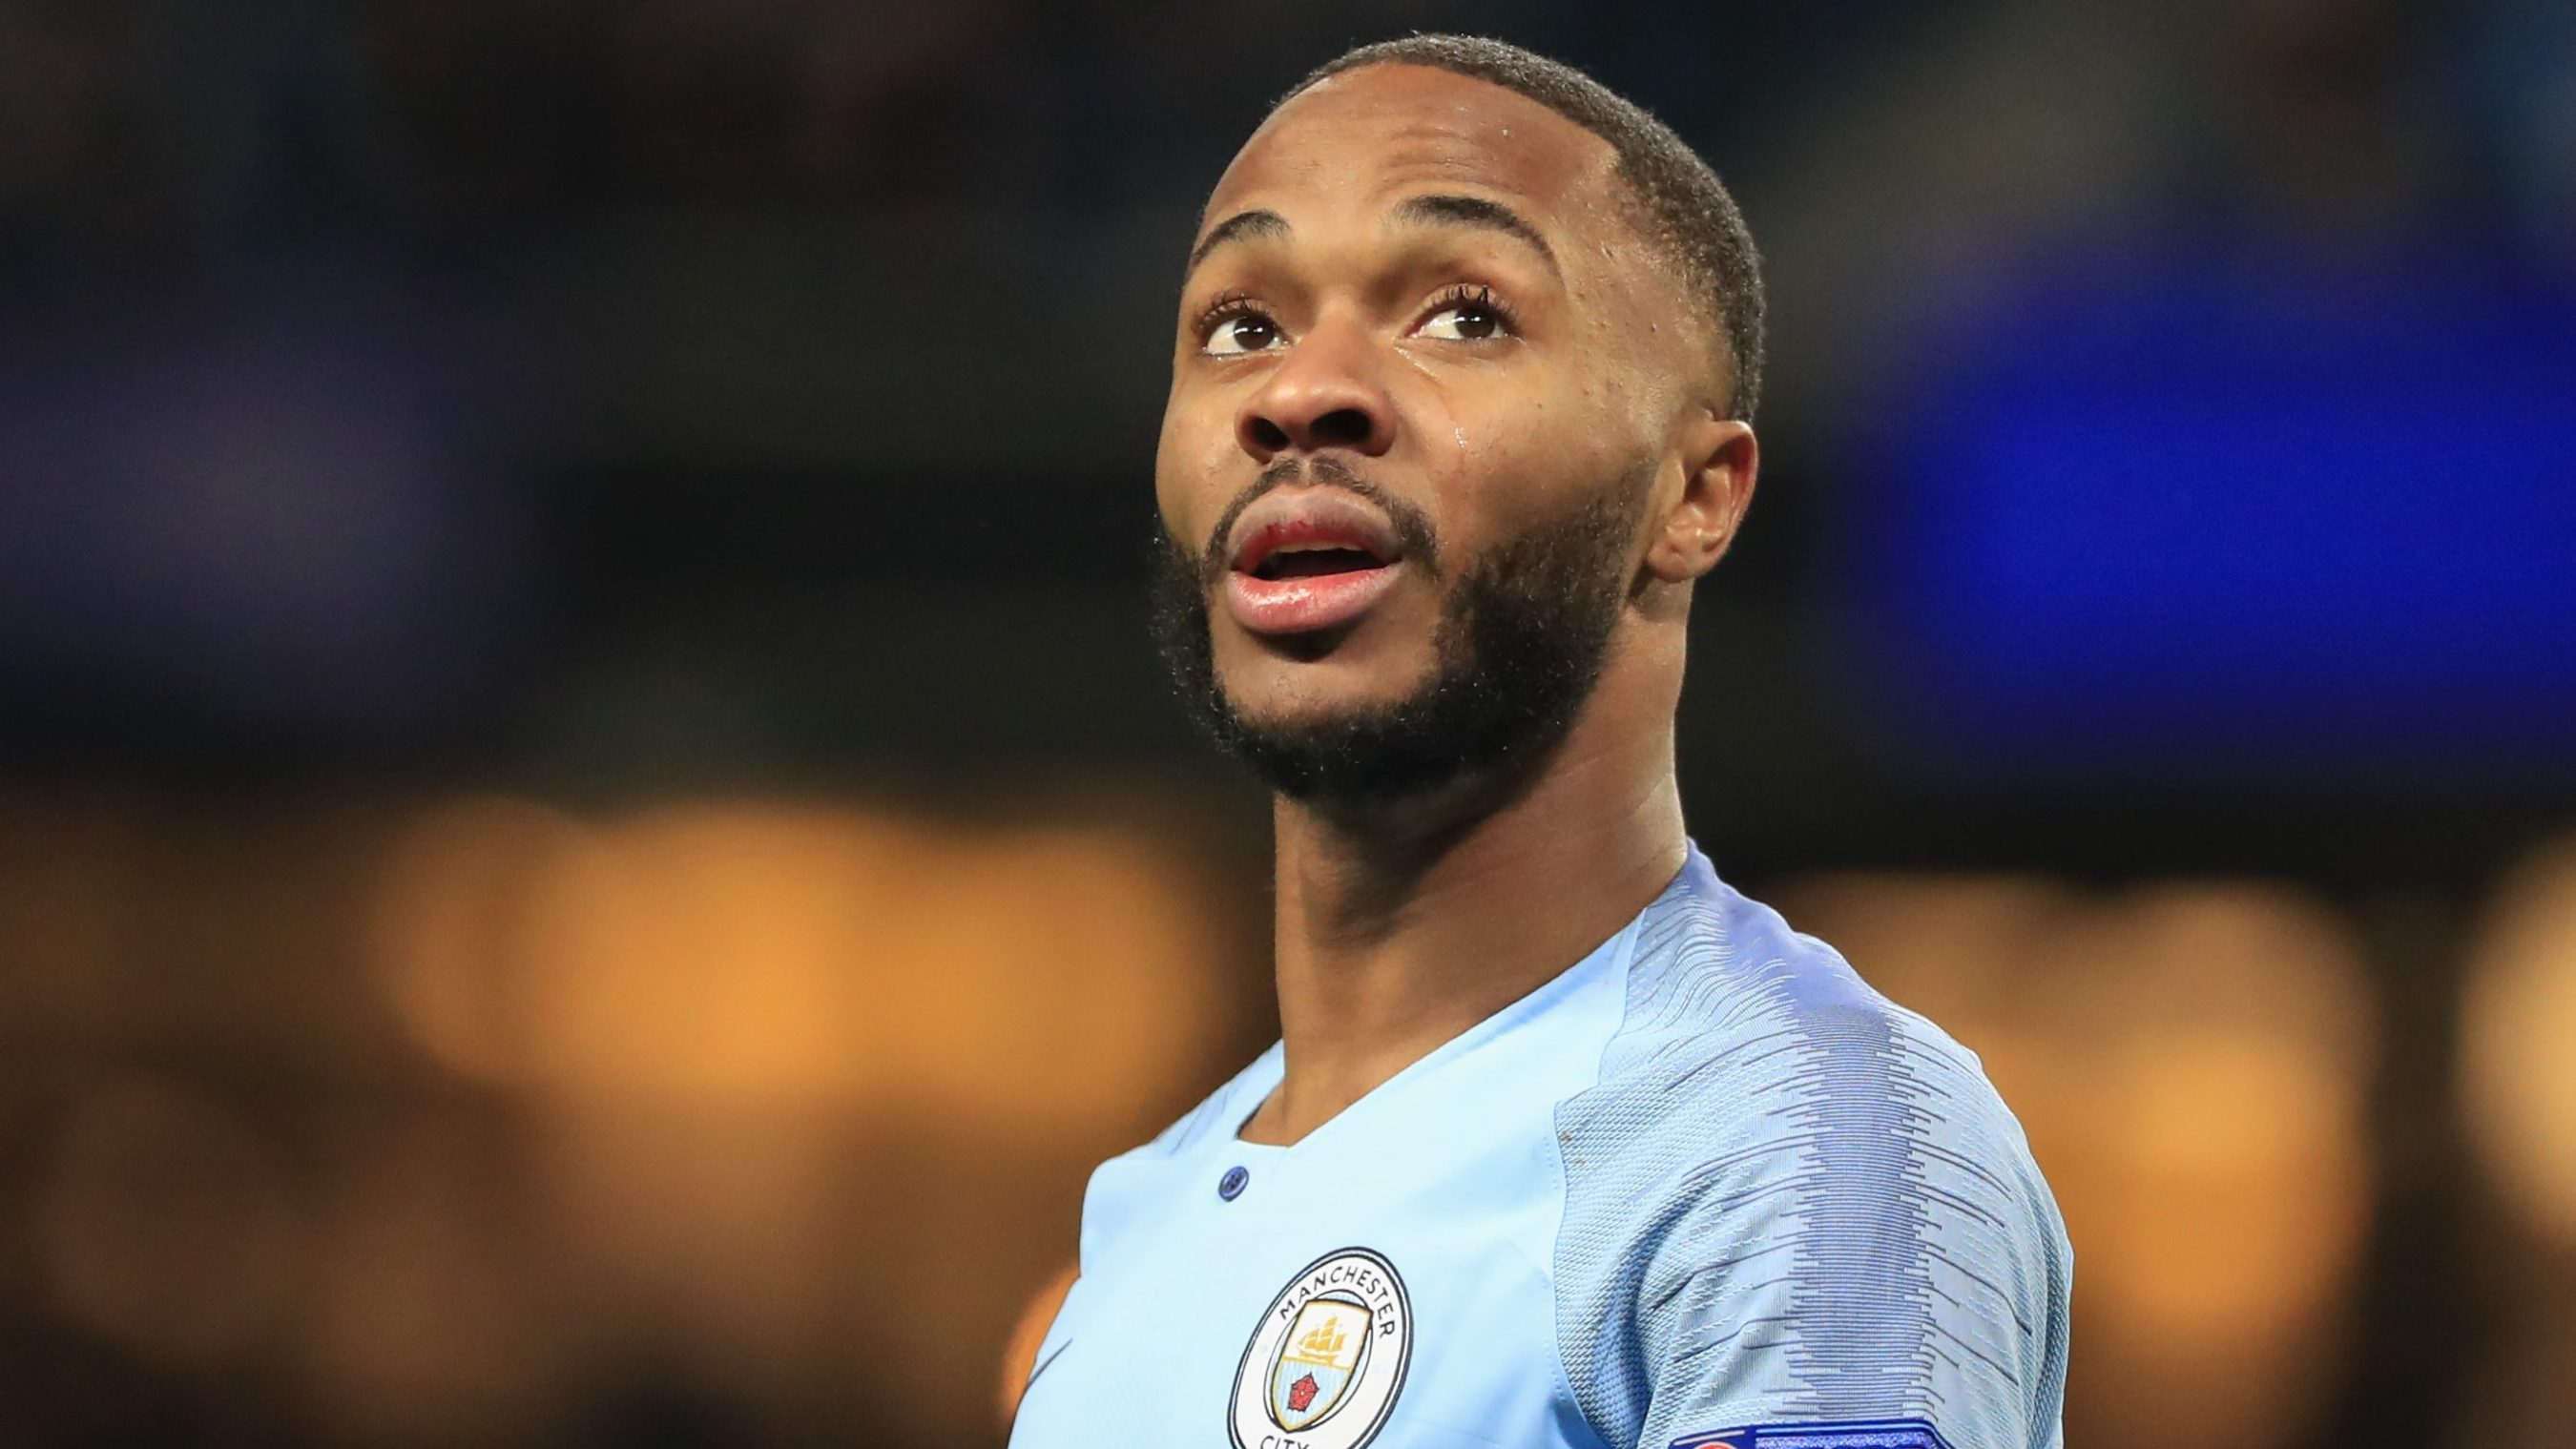 5b15ef749f1b6 Raheem Sterling, Chelsea and the racist media coverage of black athletes